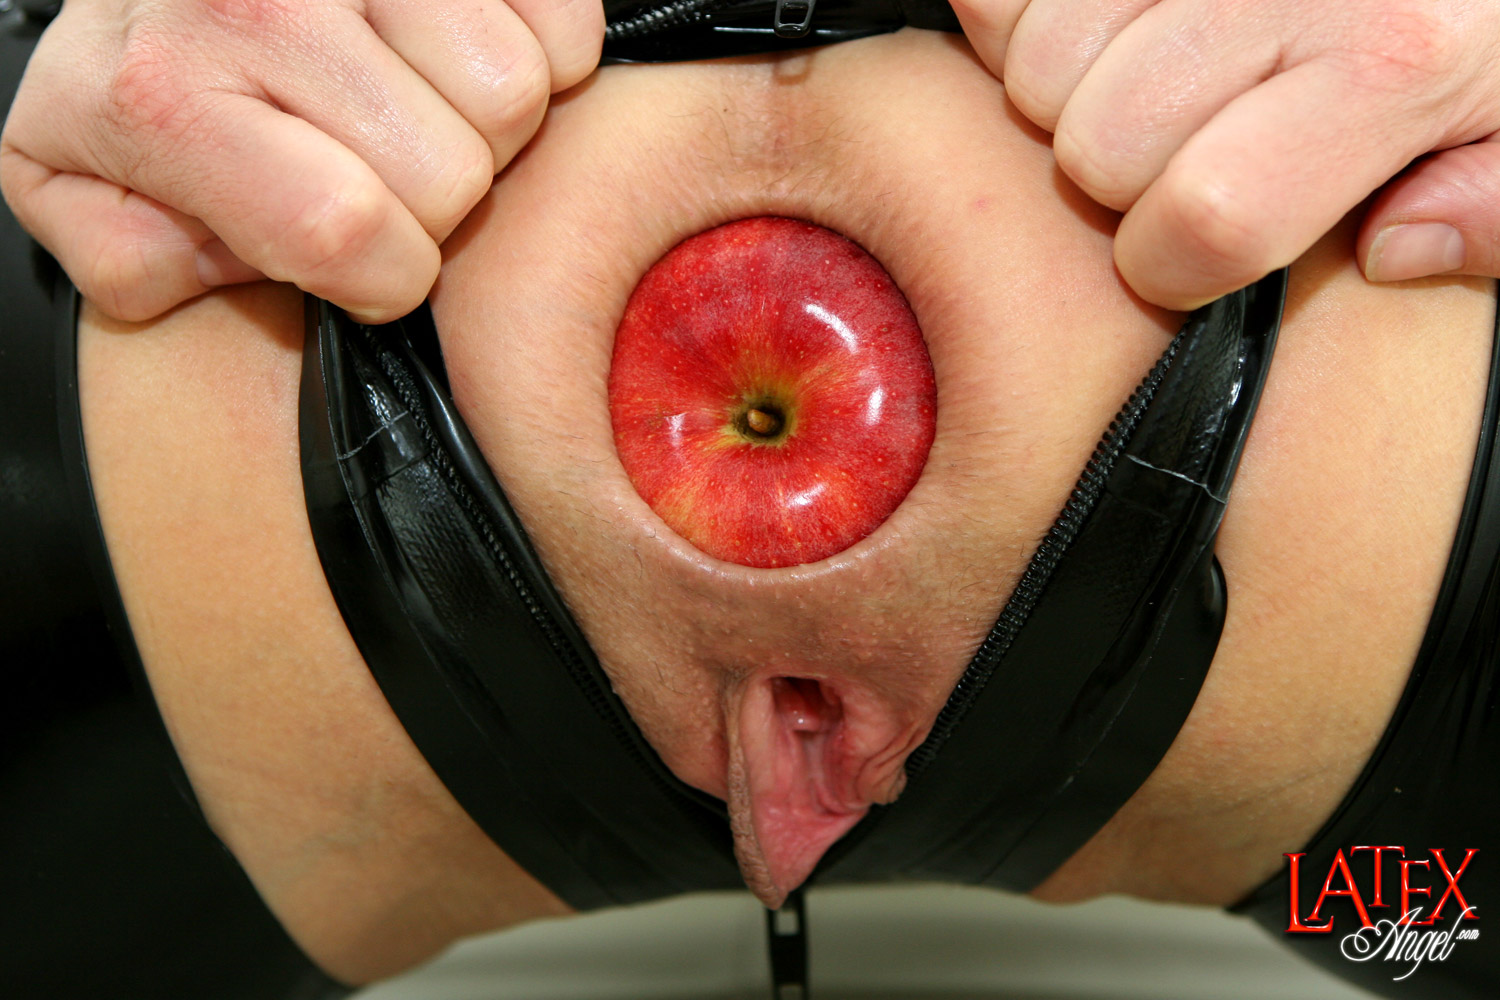 Download [LatexAngel] Apples in Butthole